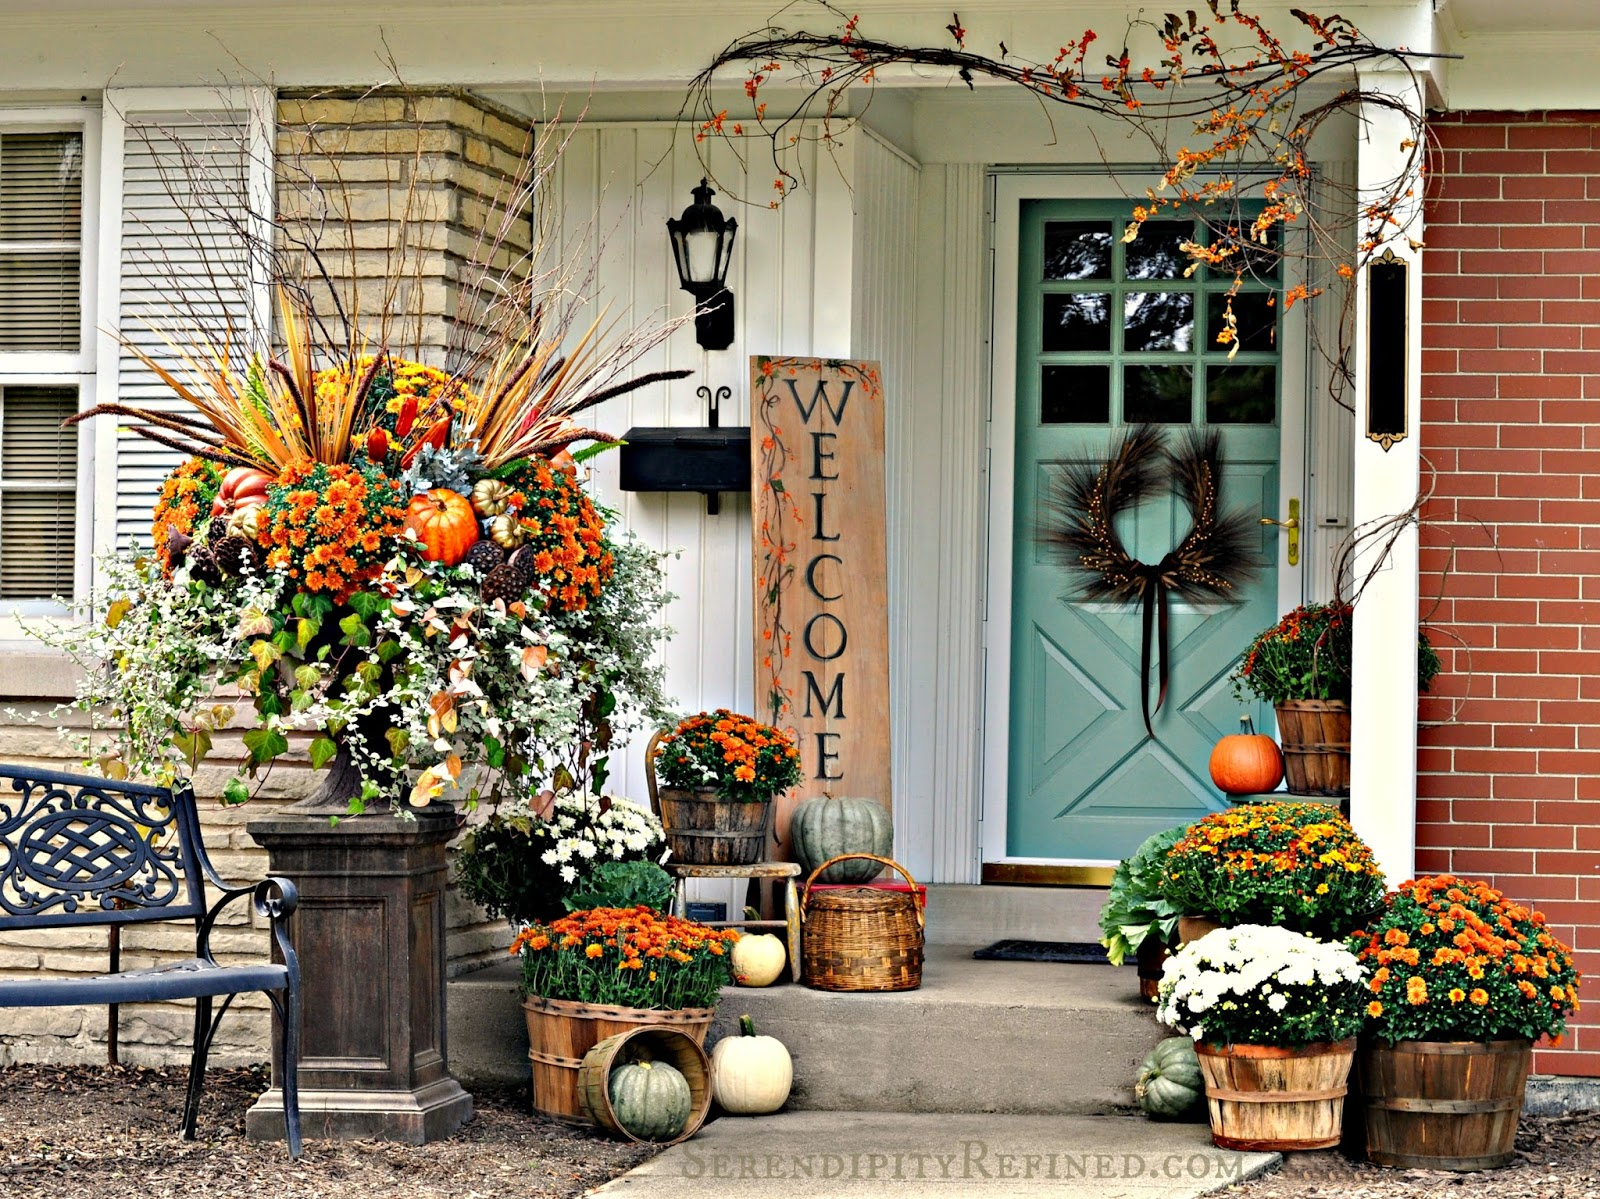 Serendipity Refined Blog: Fall Harvest Porch Decor with ...